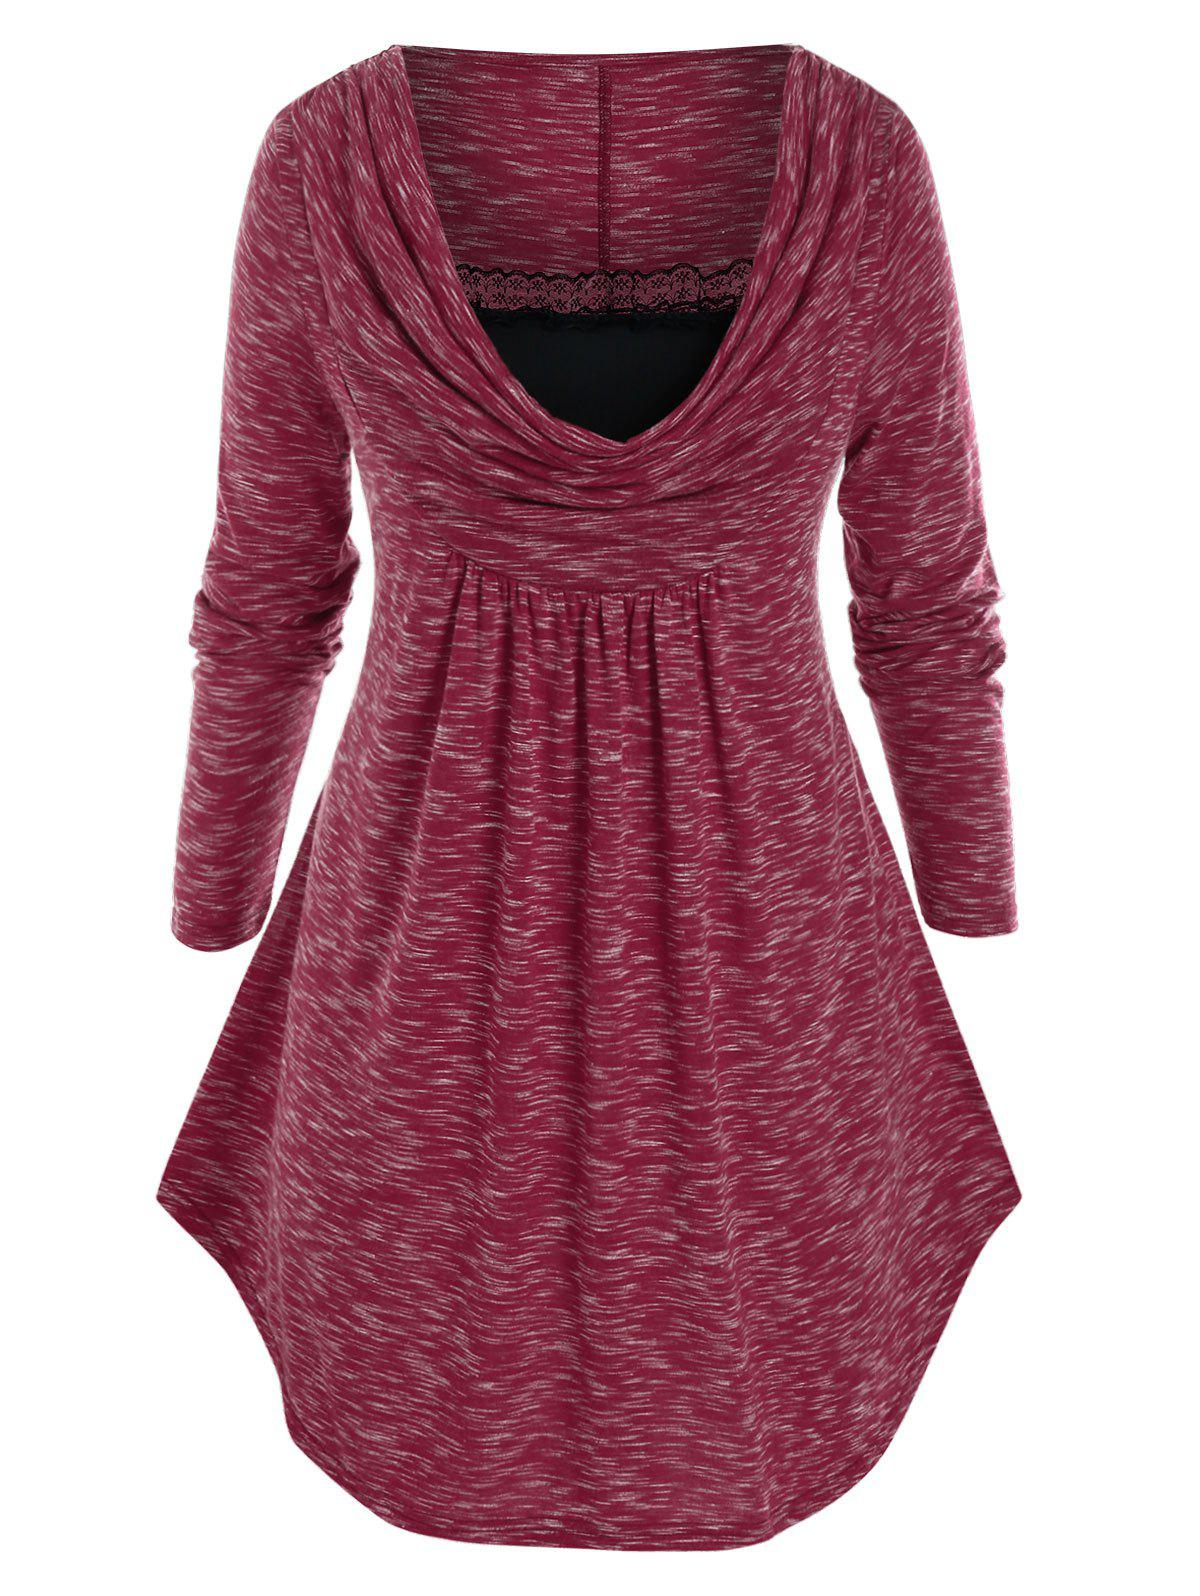 Plus Size Space Dye Cowl Front Curved Hem Lace Panel Tunic Tee